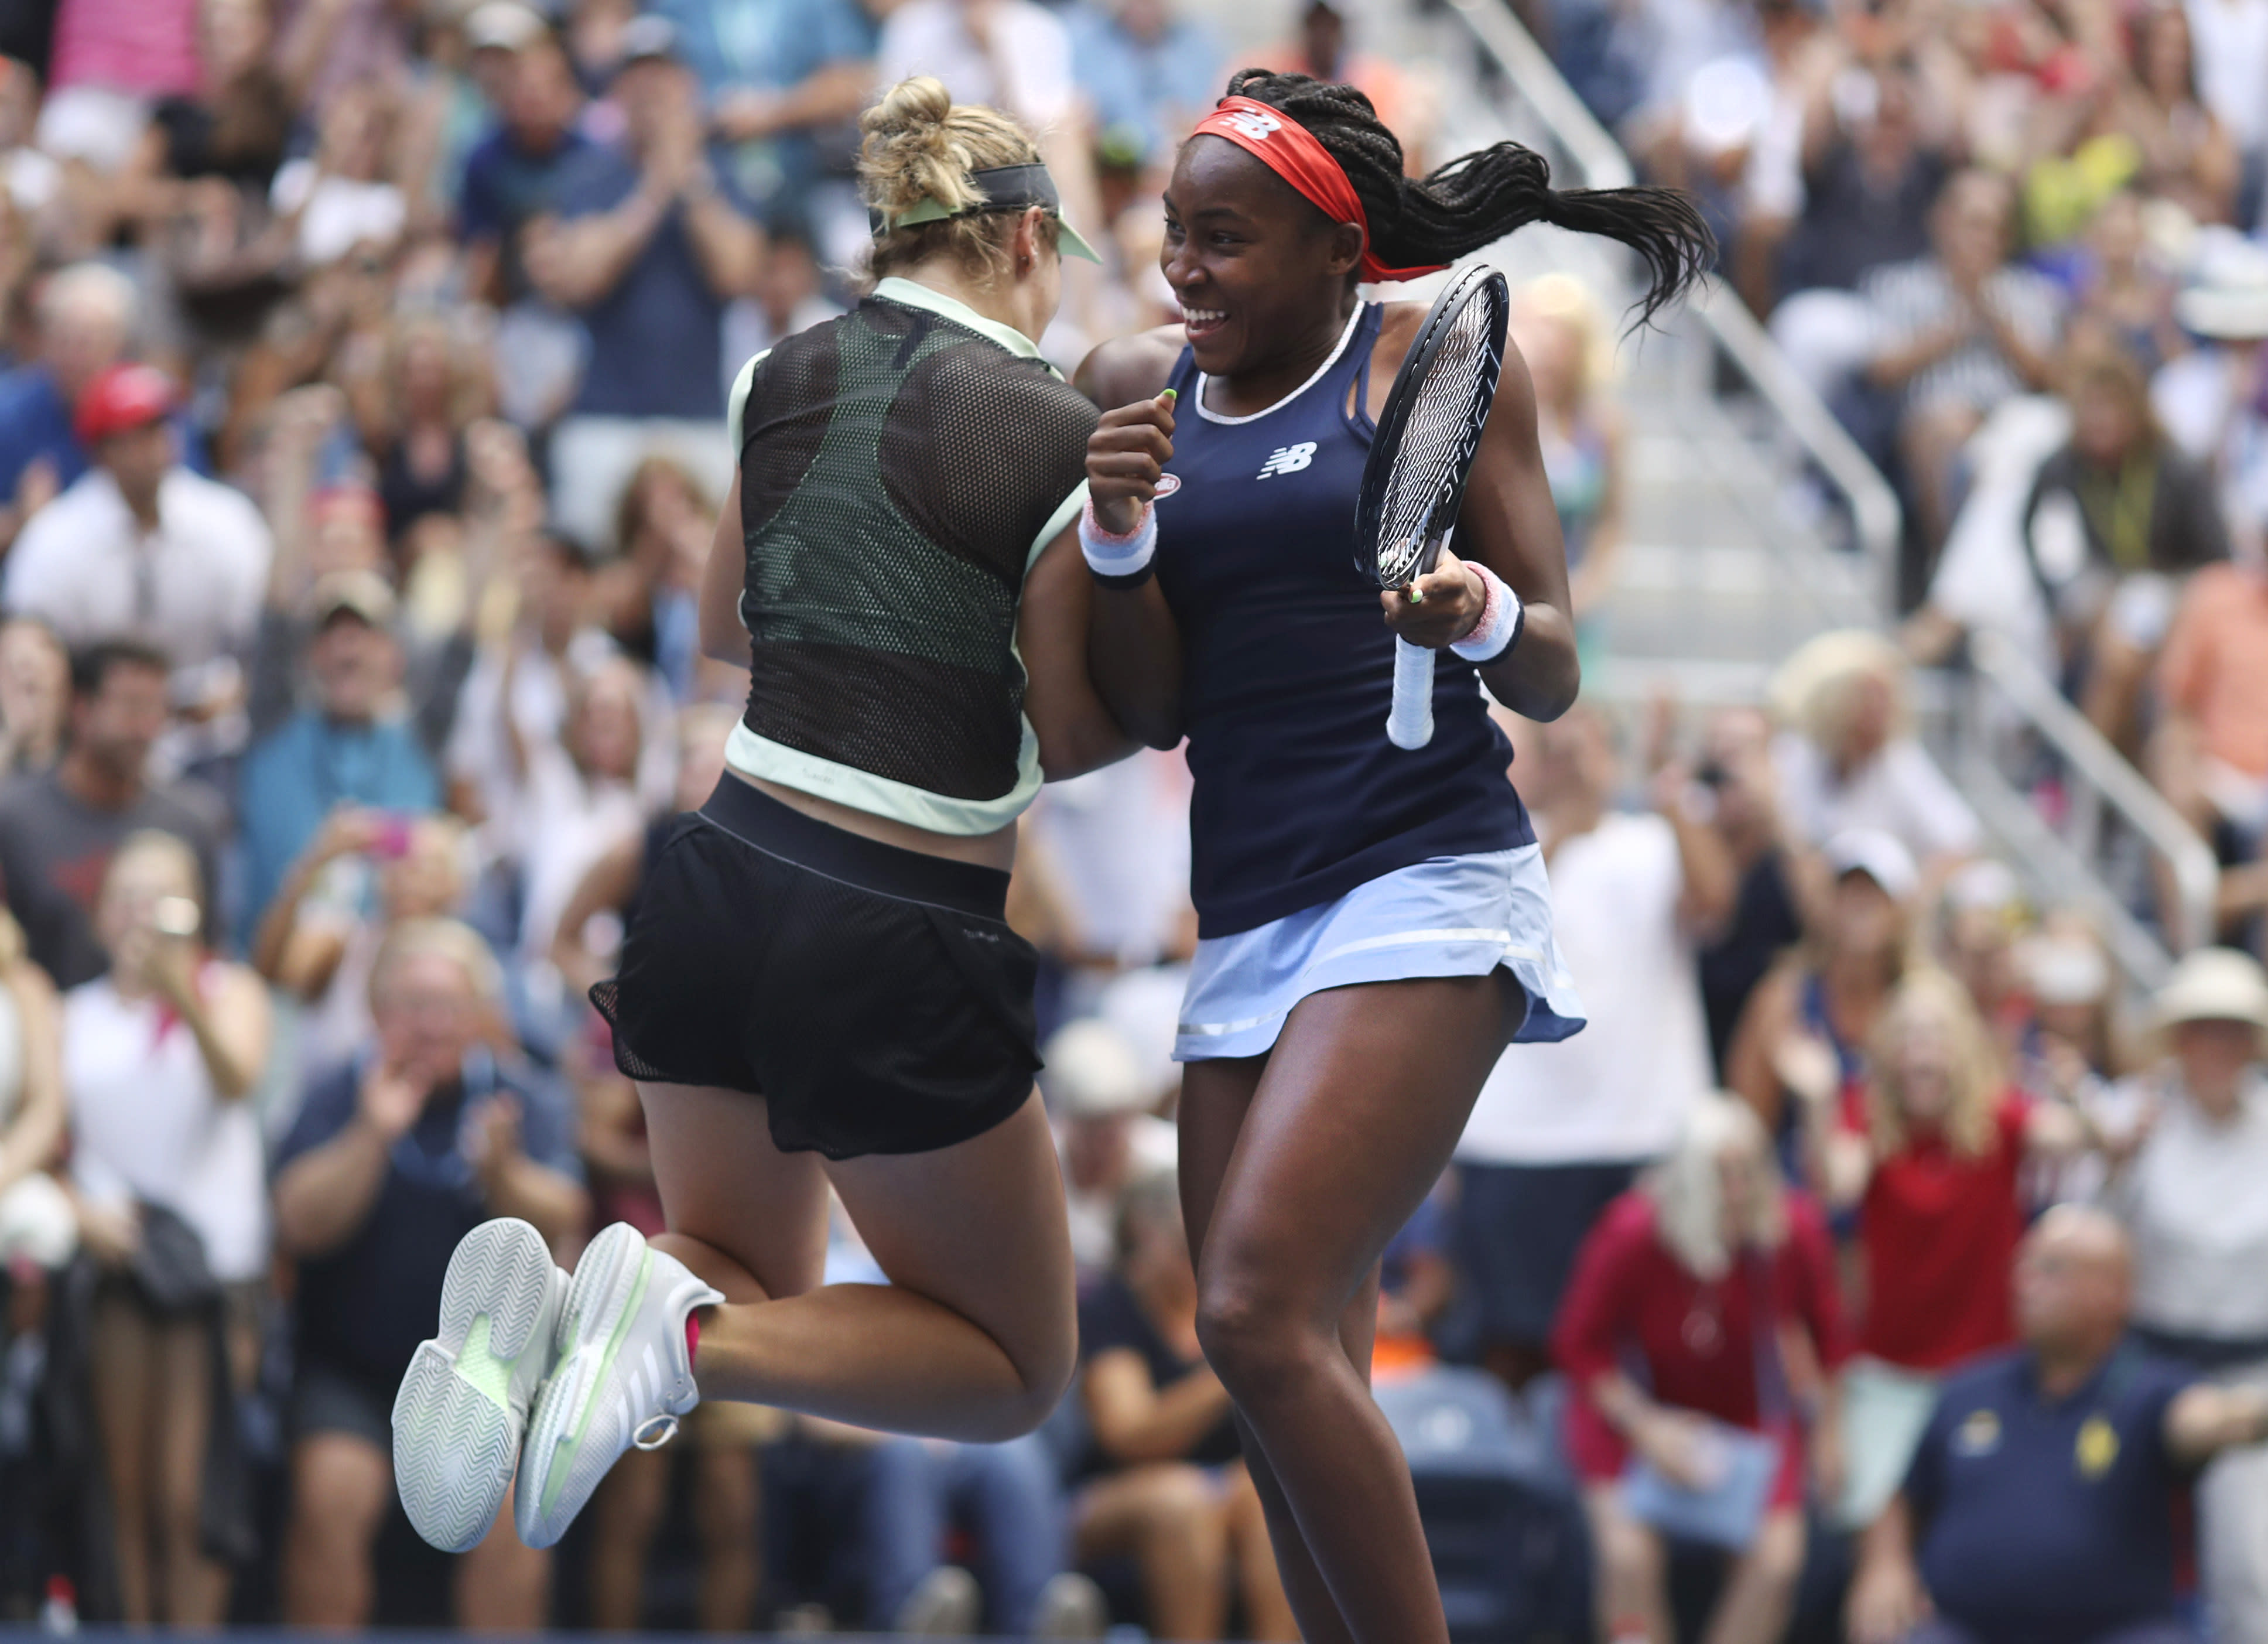 Coco Gauff, right, and her partner Catherine McNally celebrate after winning their women's doubles second round match, against Nicole Melichar and Kveta Peschjka, at the US Open tennis championships Sunday, Sept. 1, 2019, in New York. (AP Photo/Kevin Hagen)